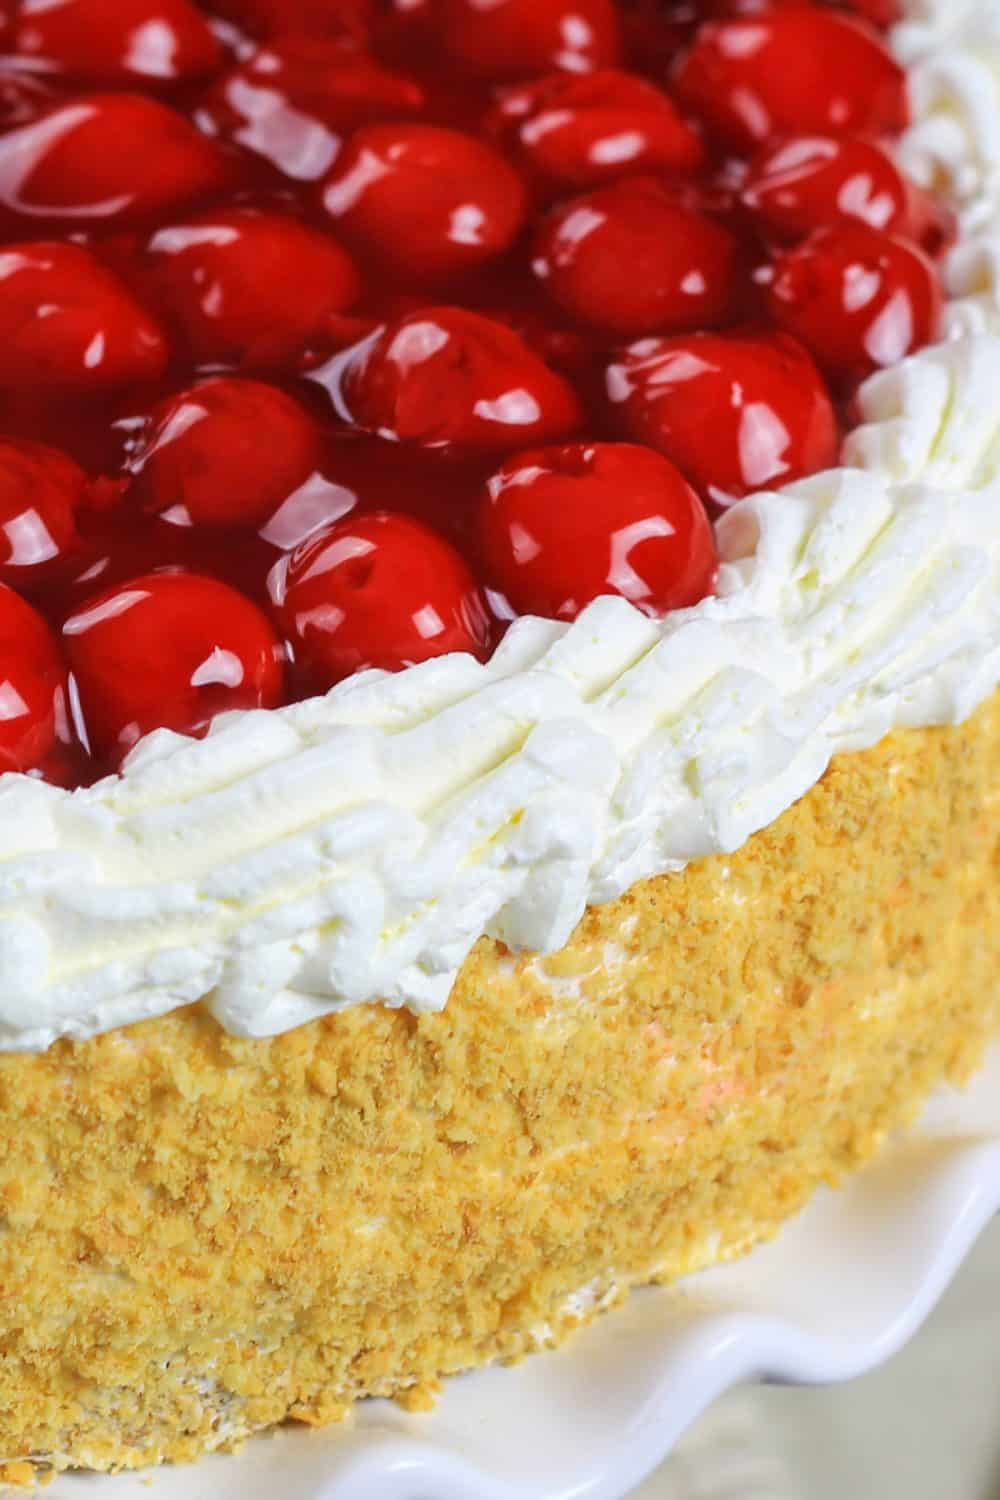 Up close picture of a completed cherry jello cake recipe with the cake sitting on a white cake plate and topped with cherry pie filling, cream cheese filling, and a coating of cake crumbs around the edges